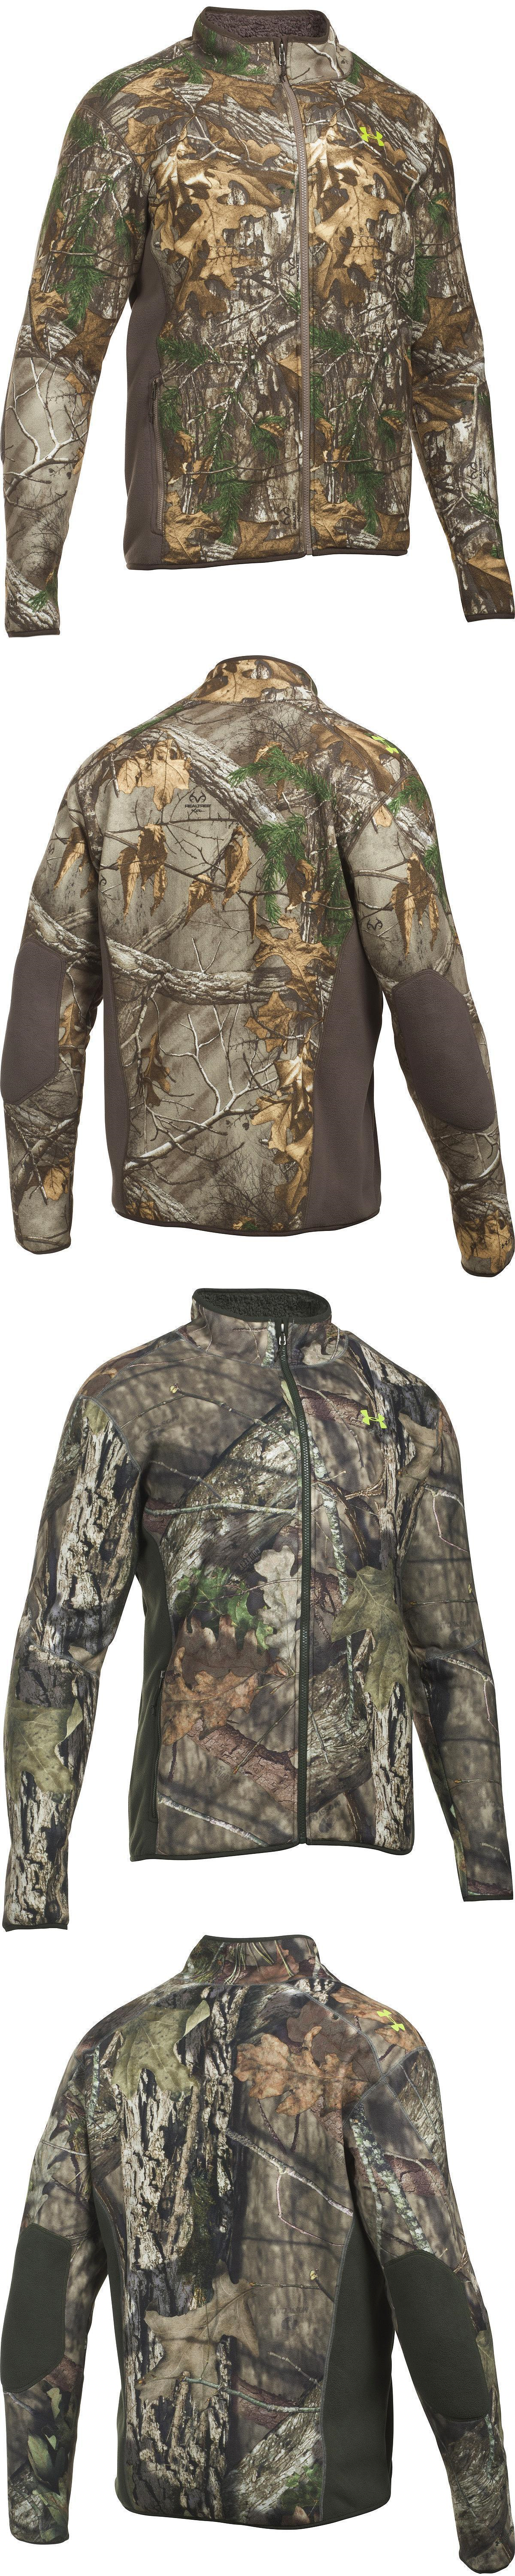 mens under armour hunting jacket